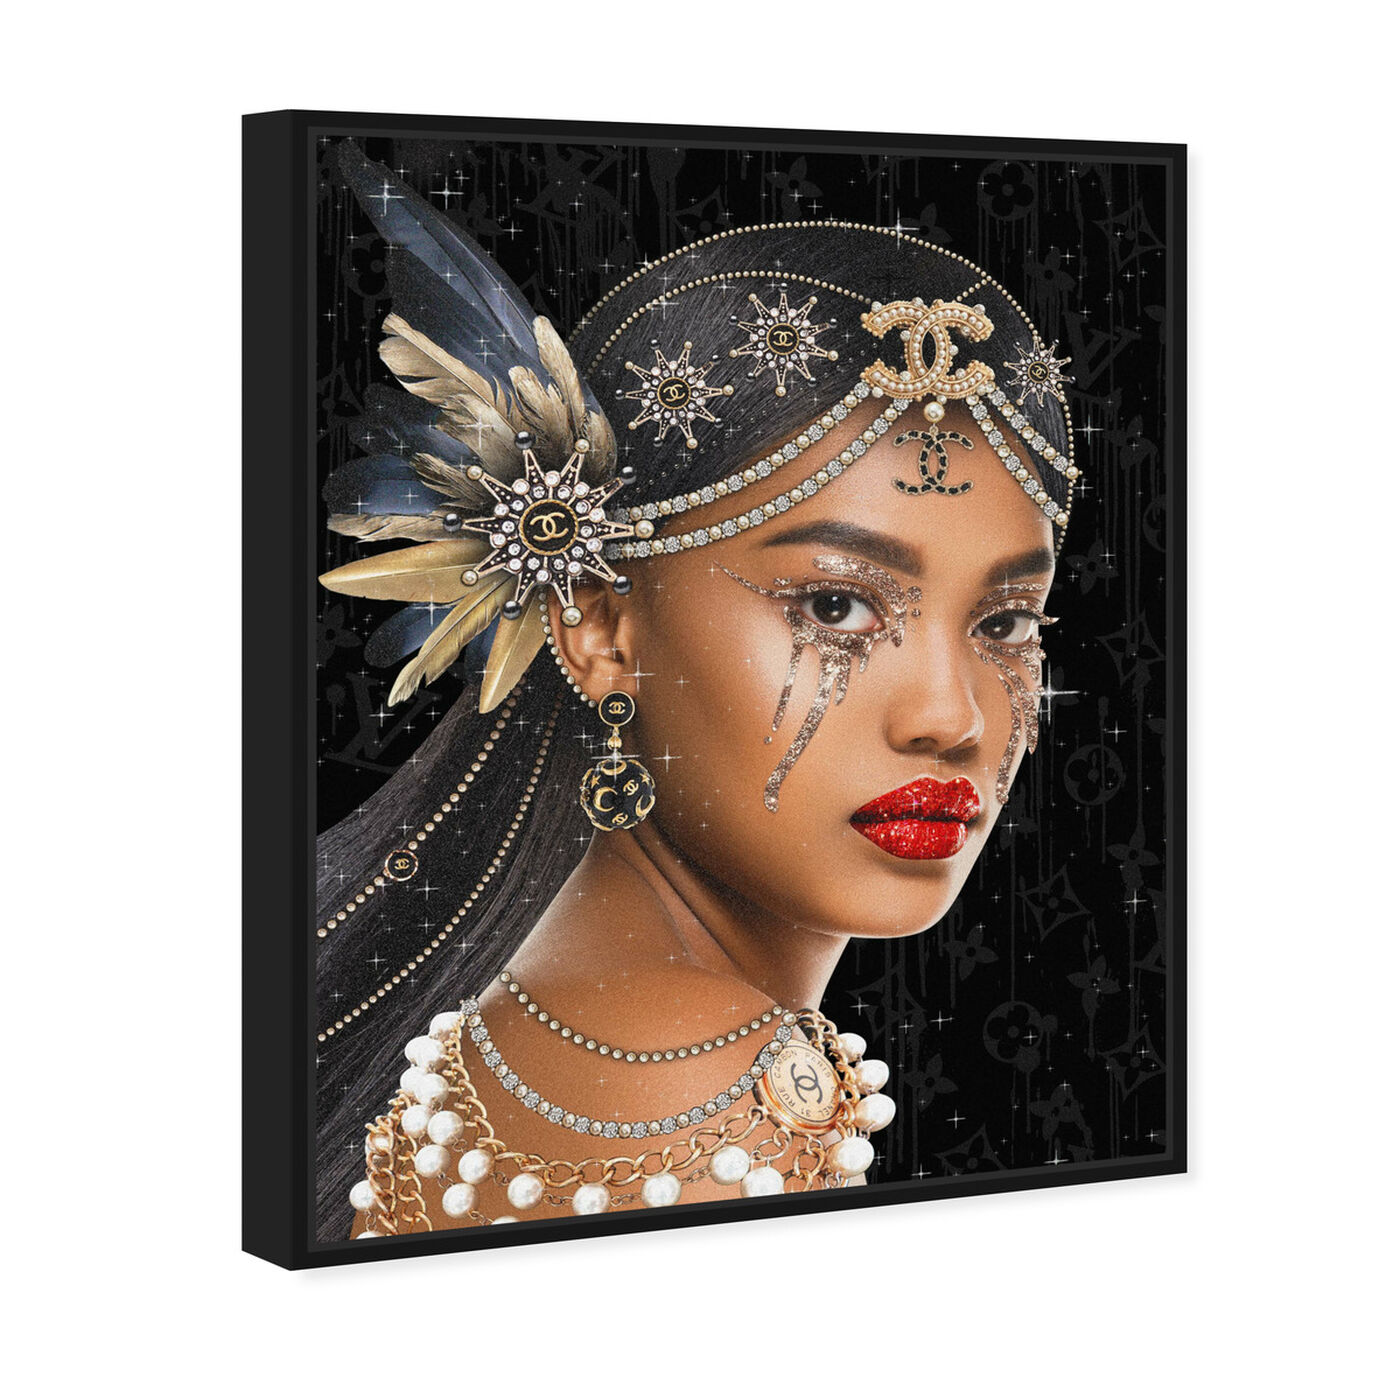 Angled view of Haute Queen featuring fashion and glam and portraits art.